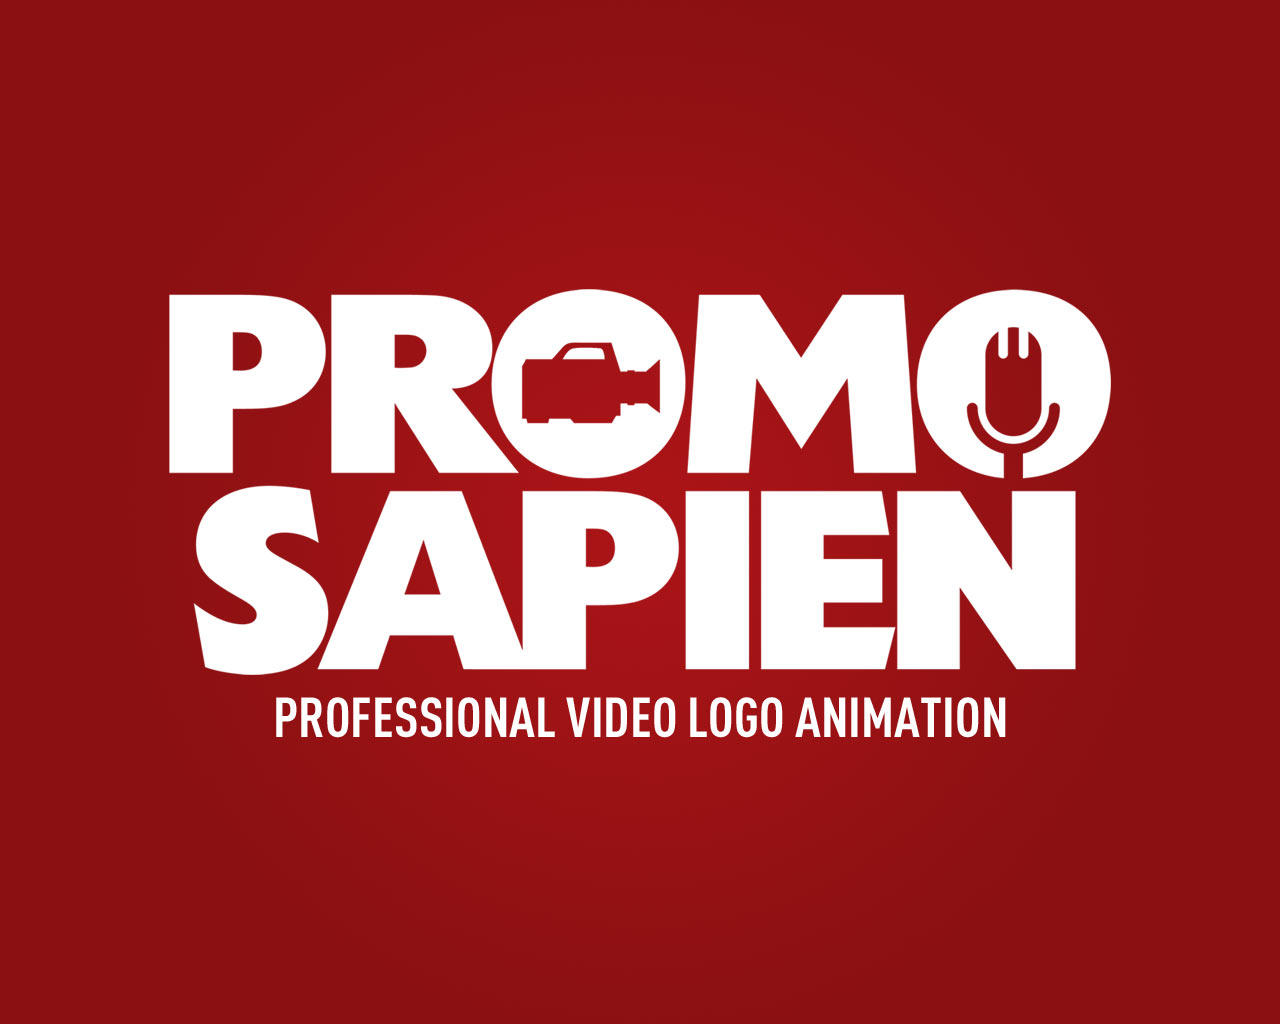 Professional Video Logo Animation by promosapien - 74538